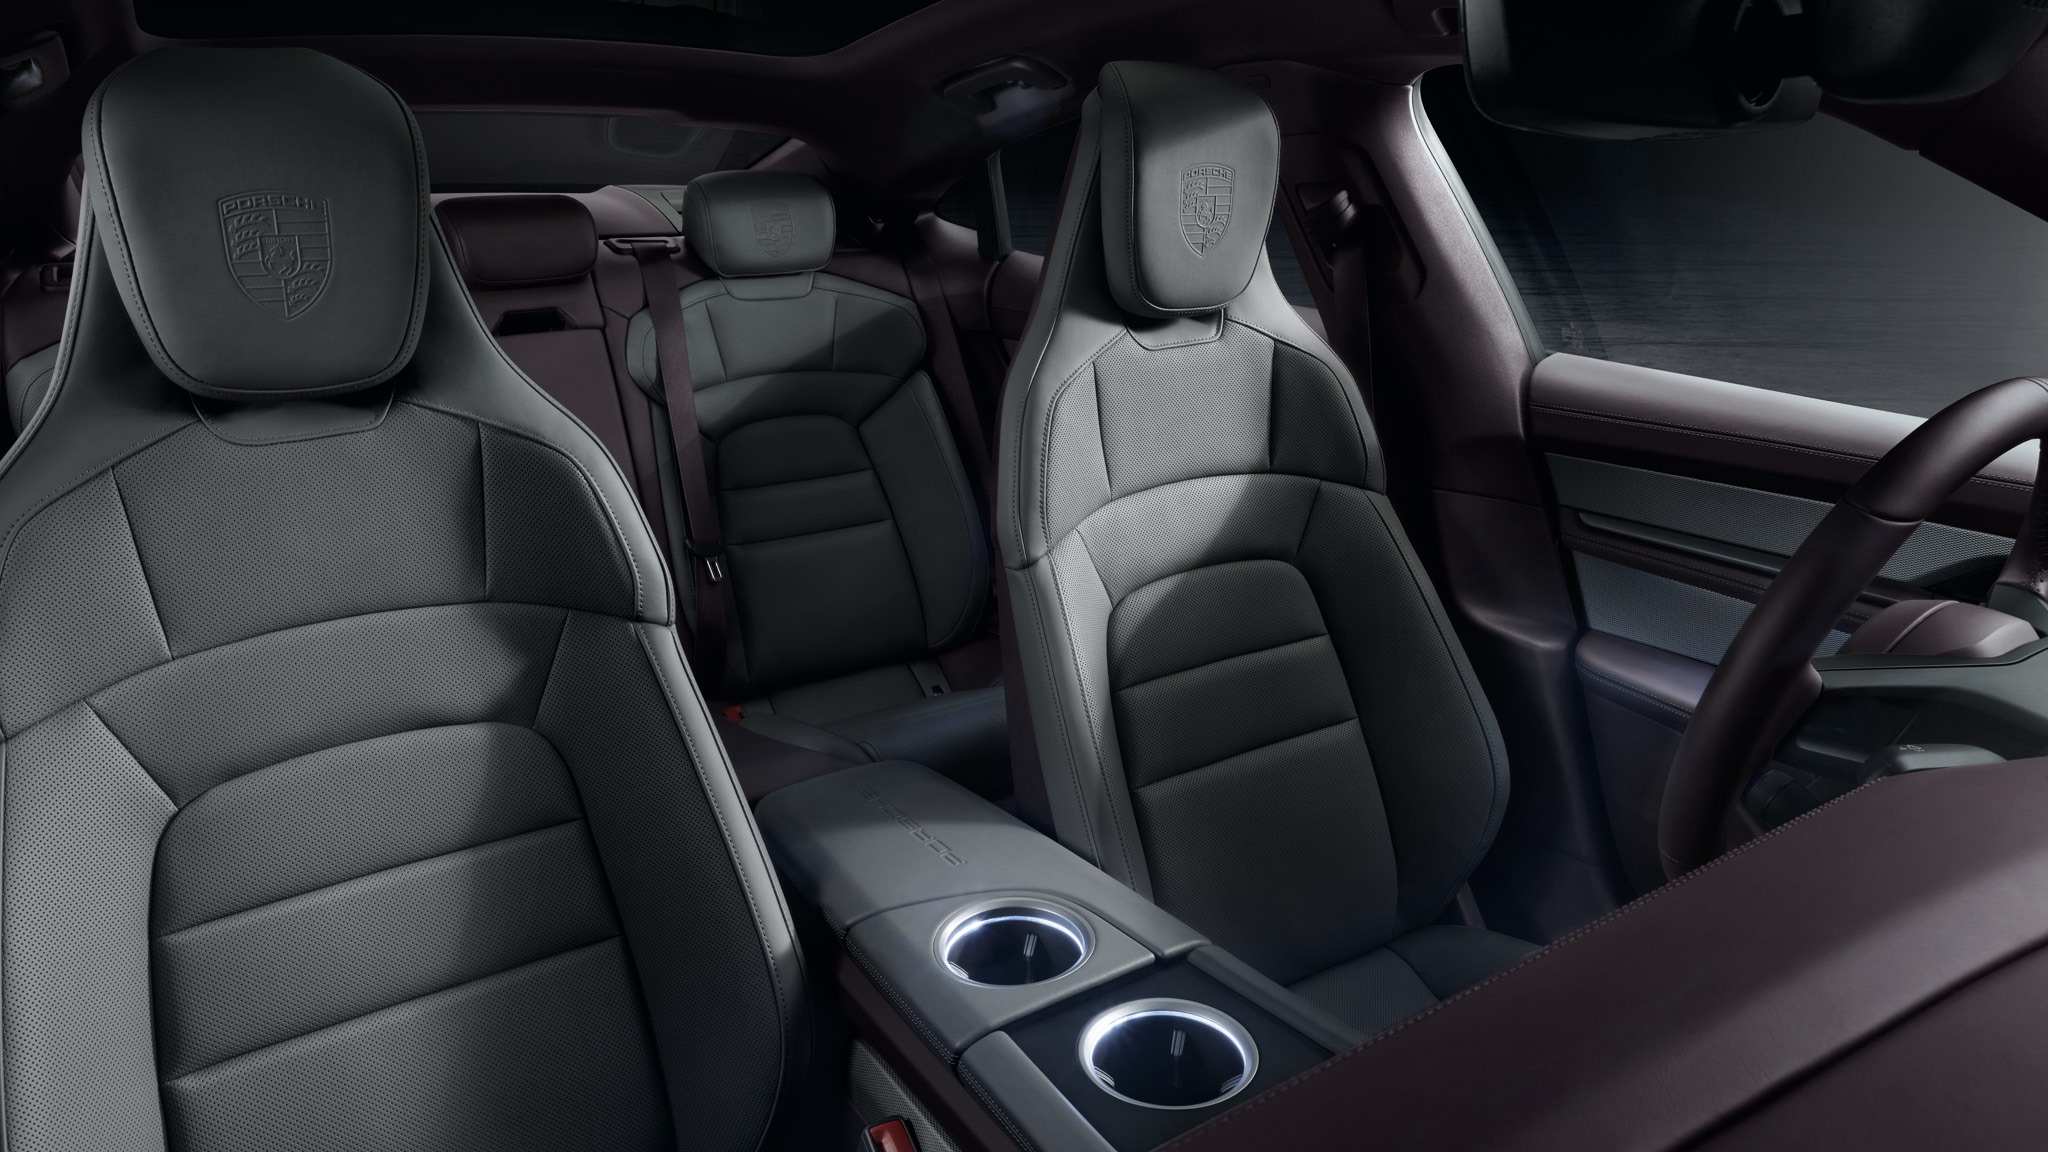 The interior of the Taycan, with cream leather seats and a pink dash